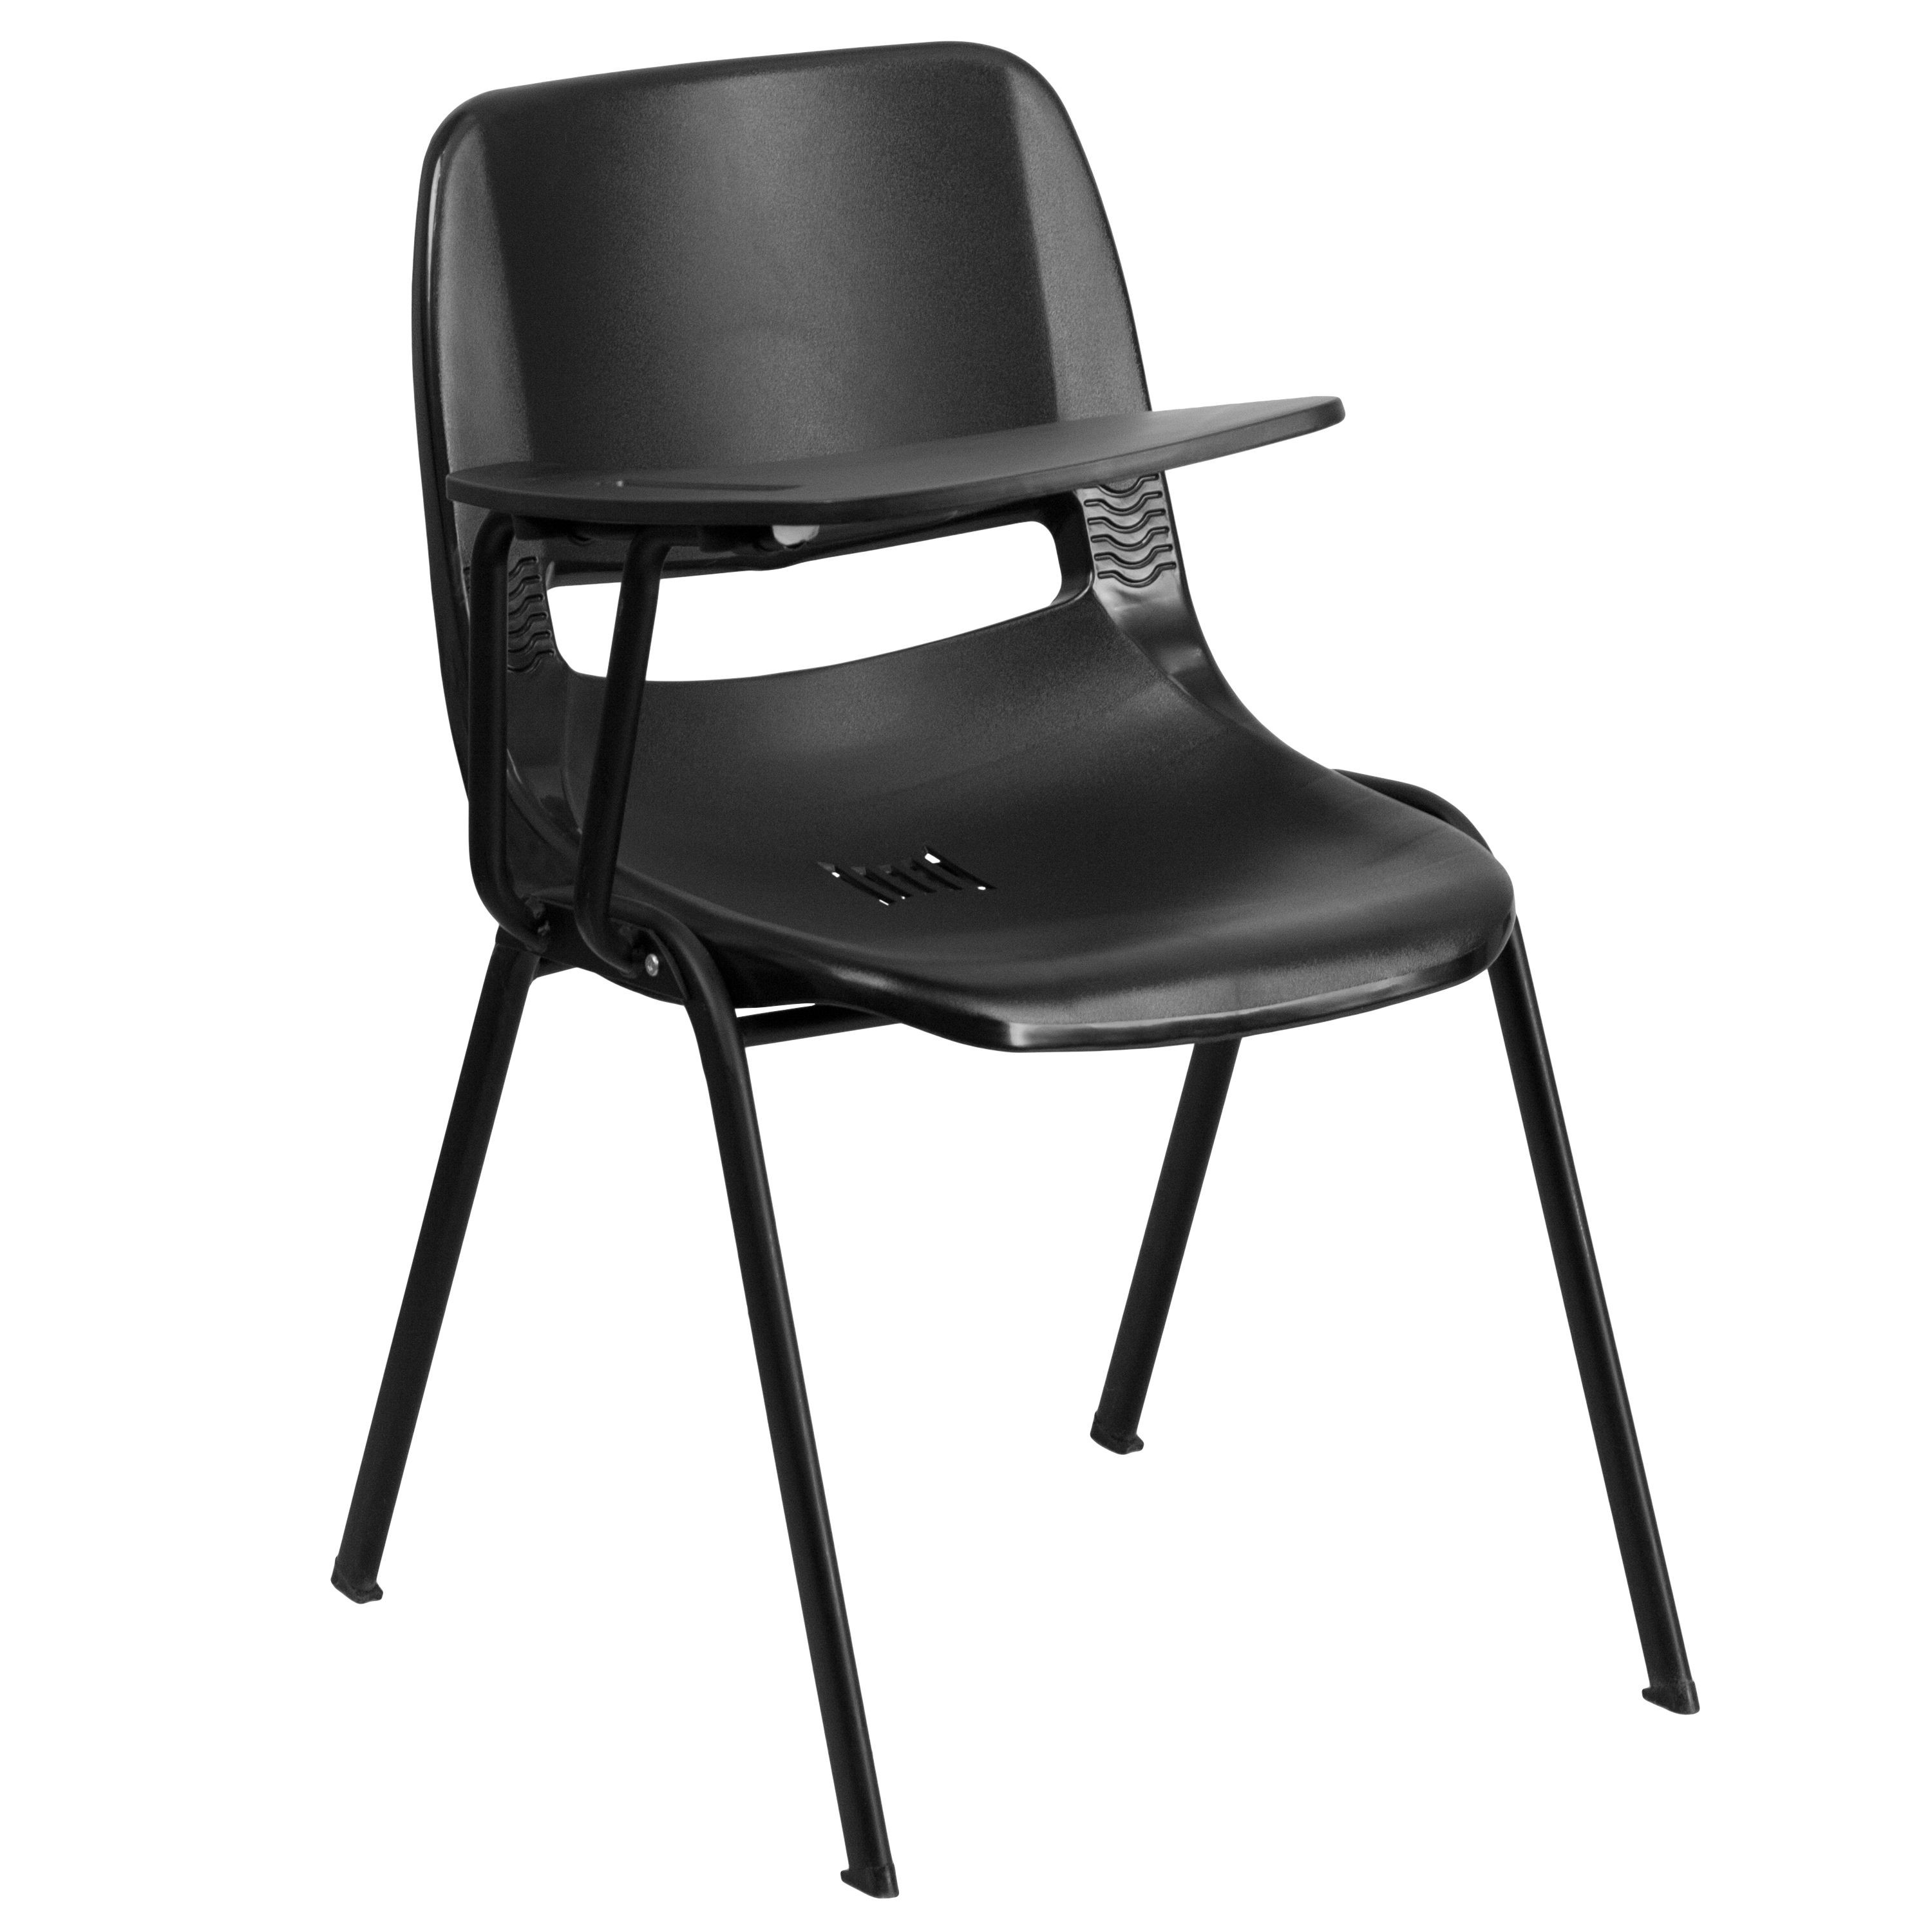 chair with desk arm brown accent chairs living room flash furniture rut eo1 bk rtab gg black ergonomic shell